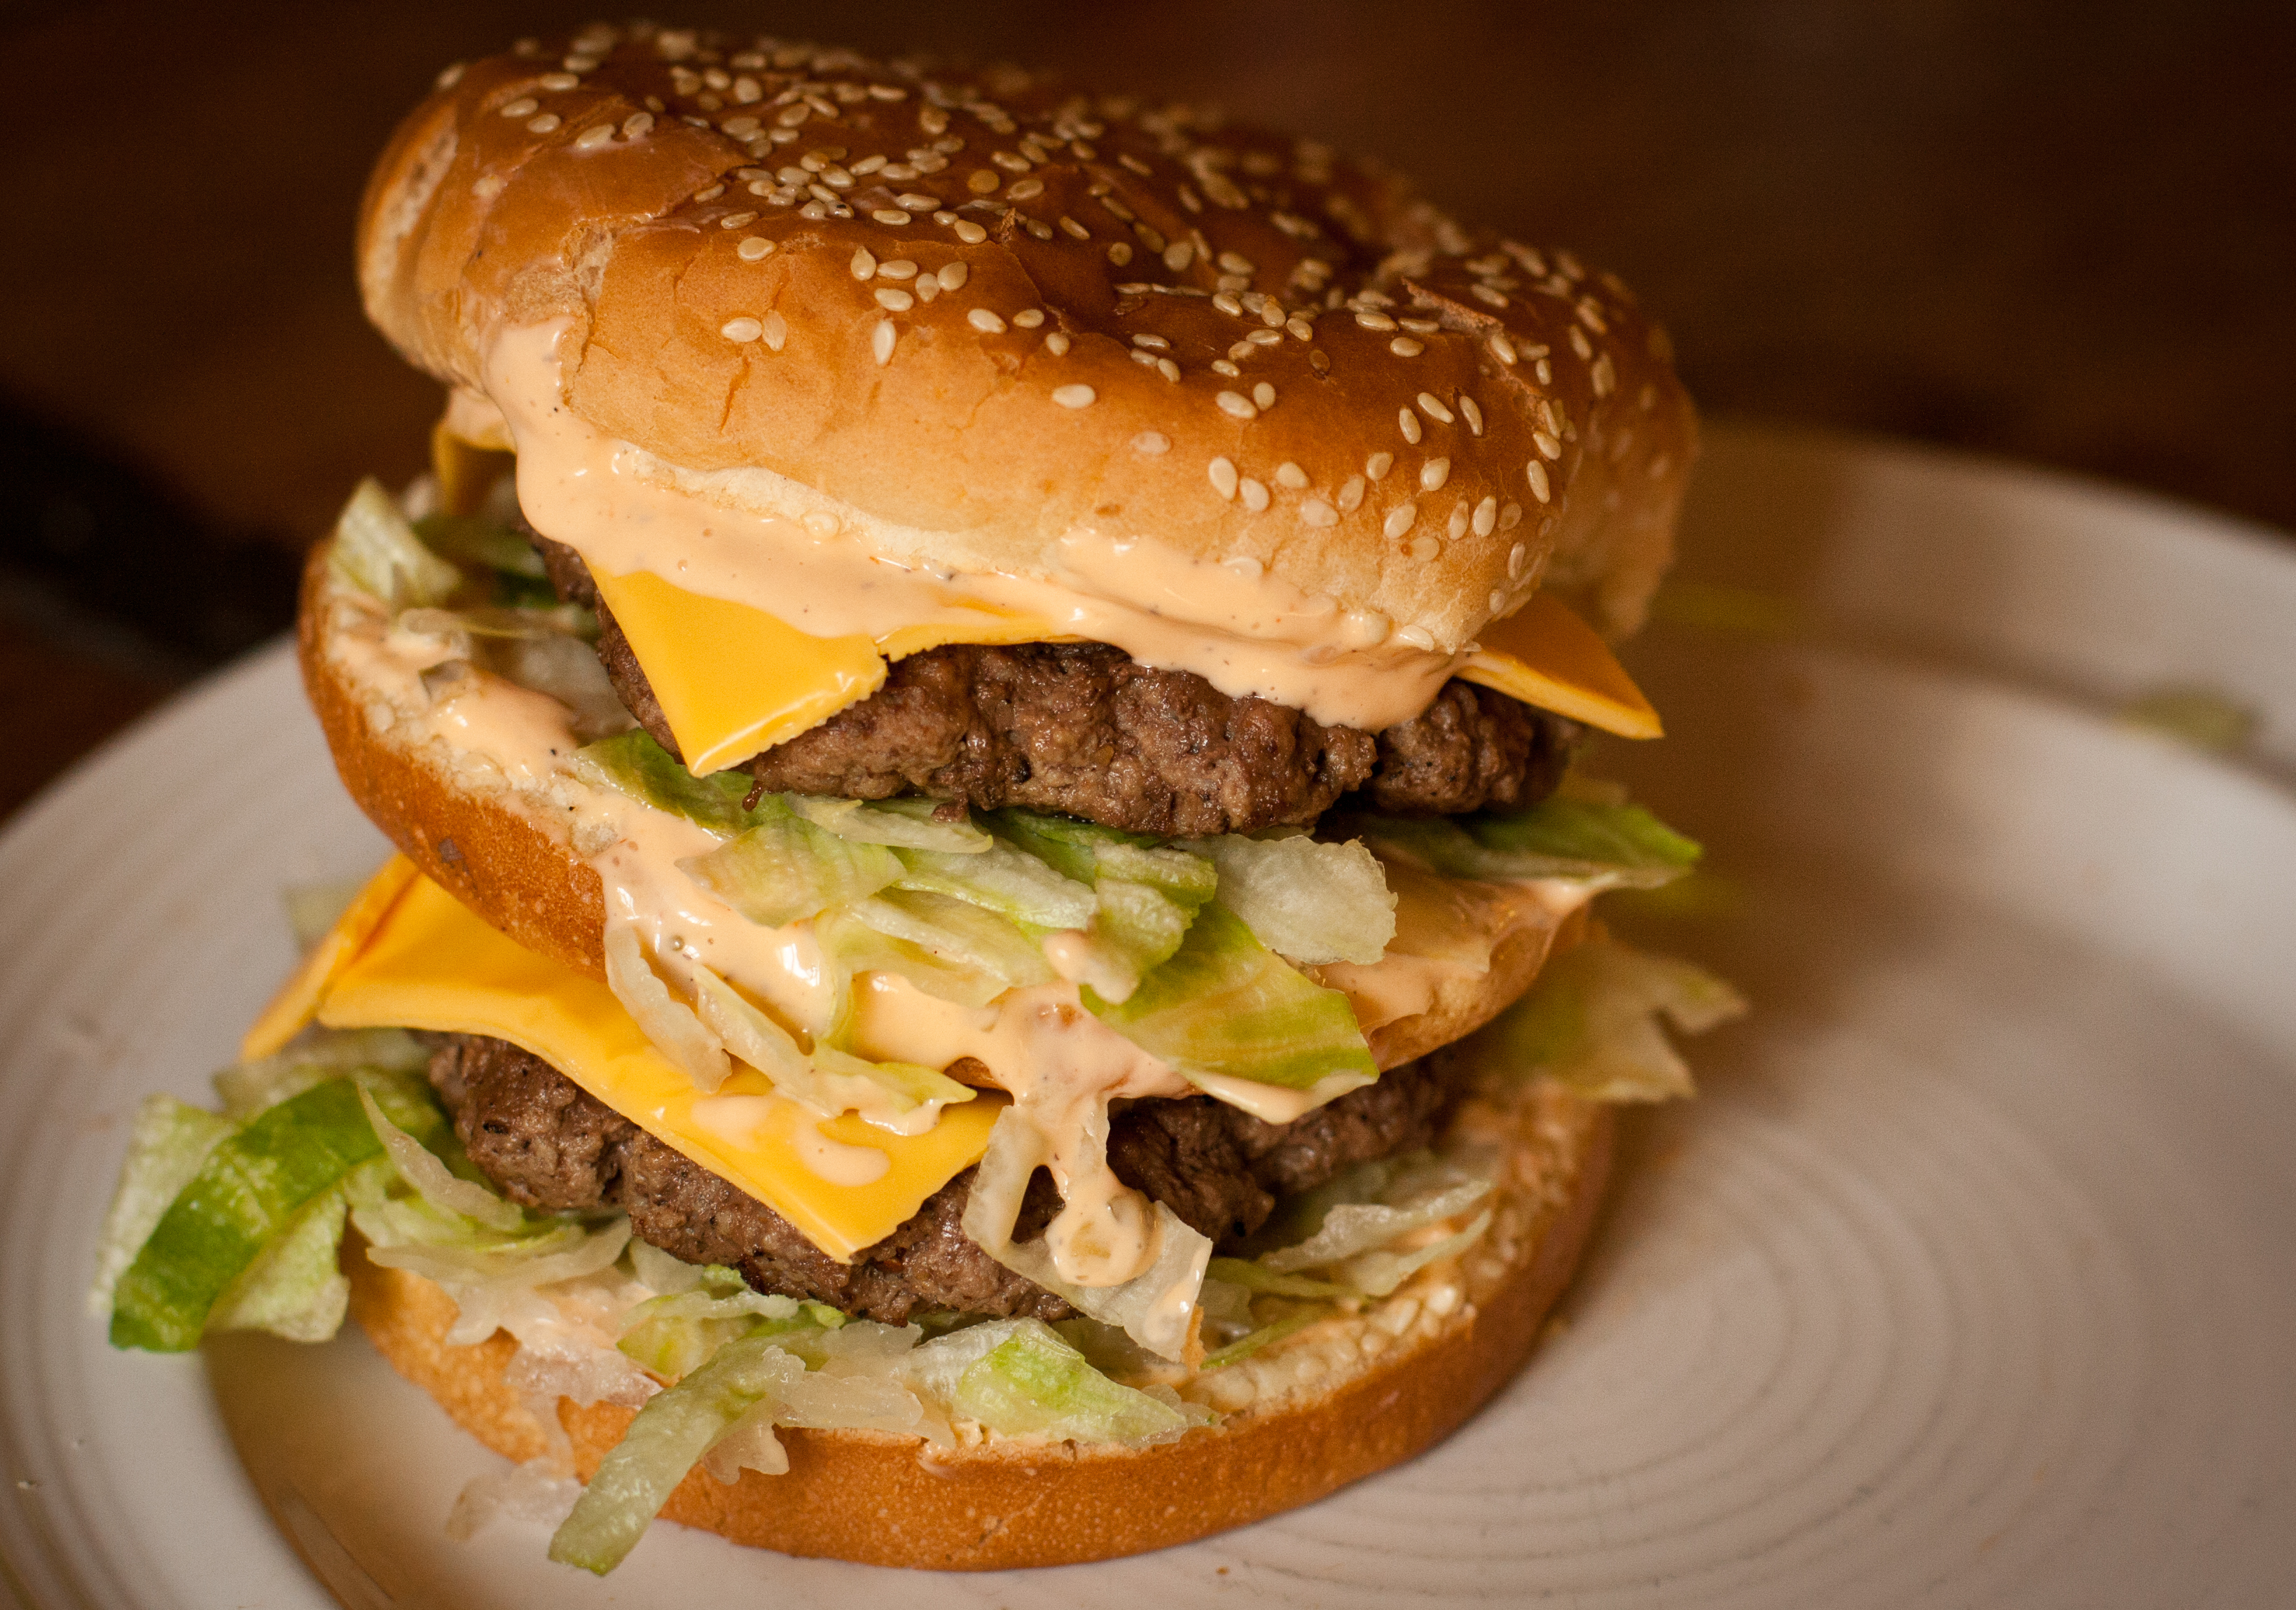 Big Mac except made with real food products!